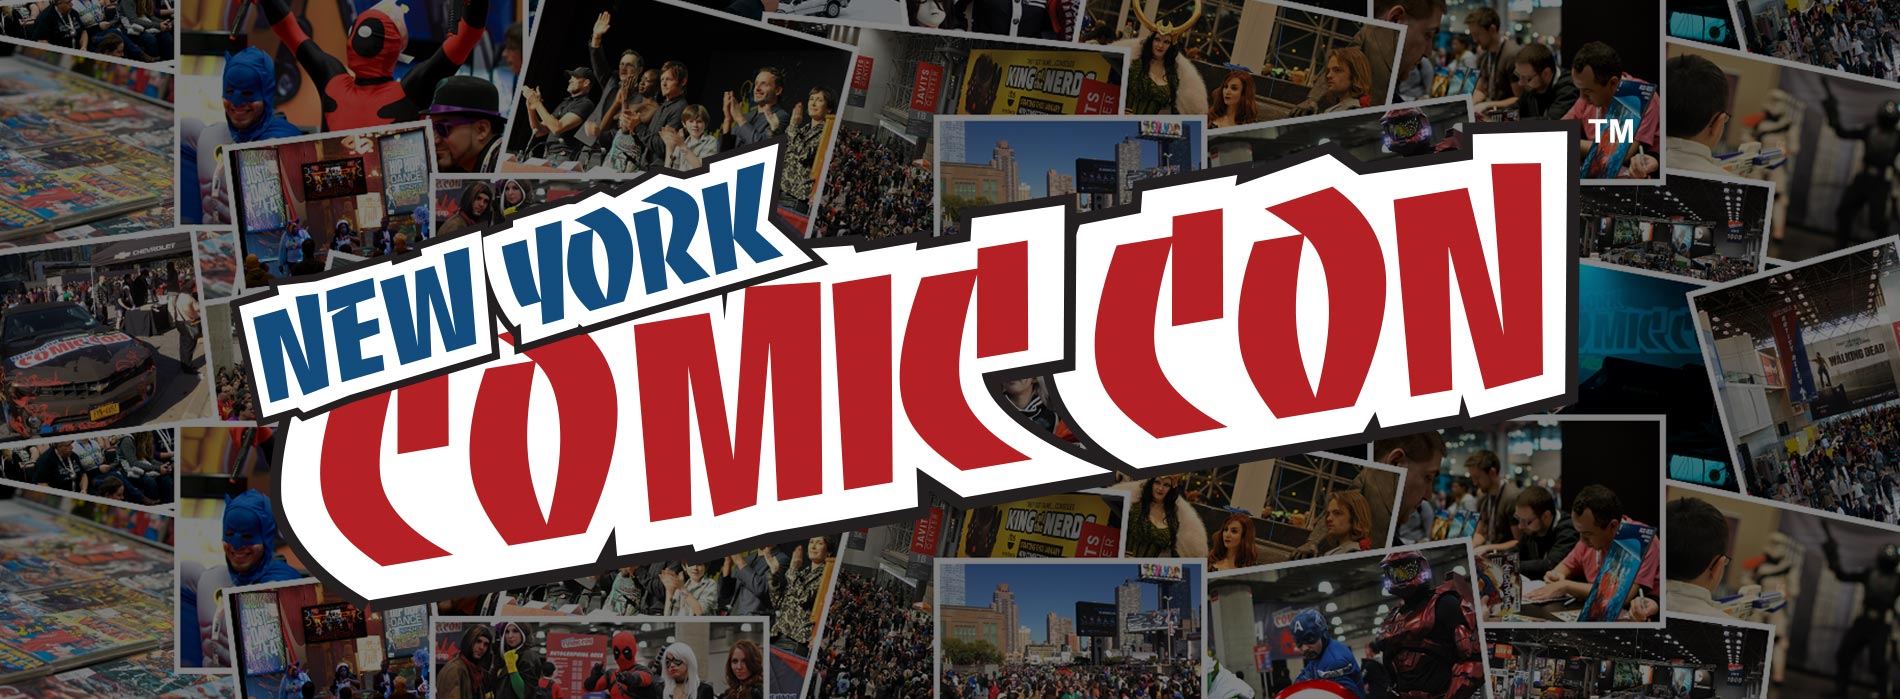 New York Comic Con Was Attended By 151,000 People, Surpasses San Diego